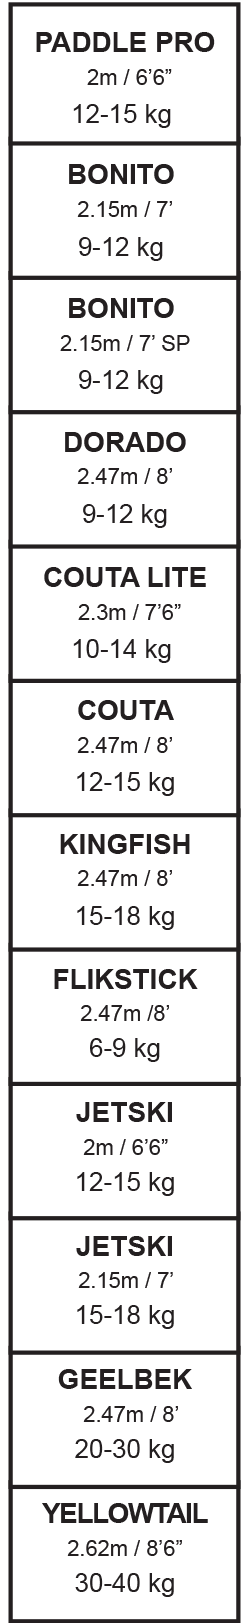 kingfisher-poseidon-offshore-series-specs